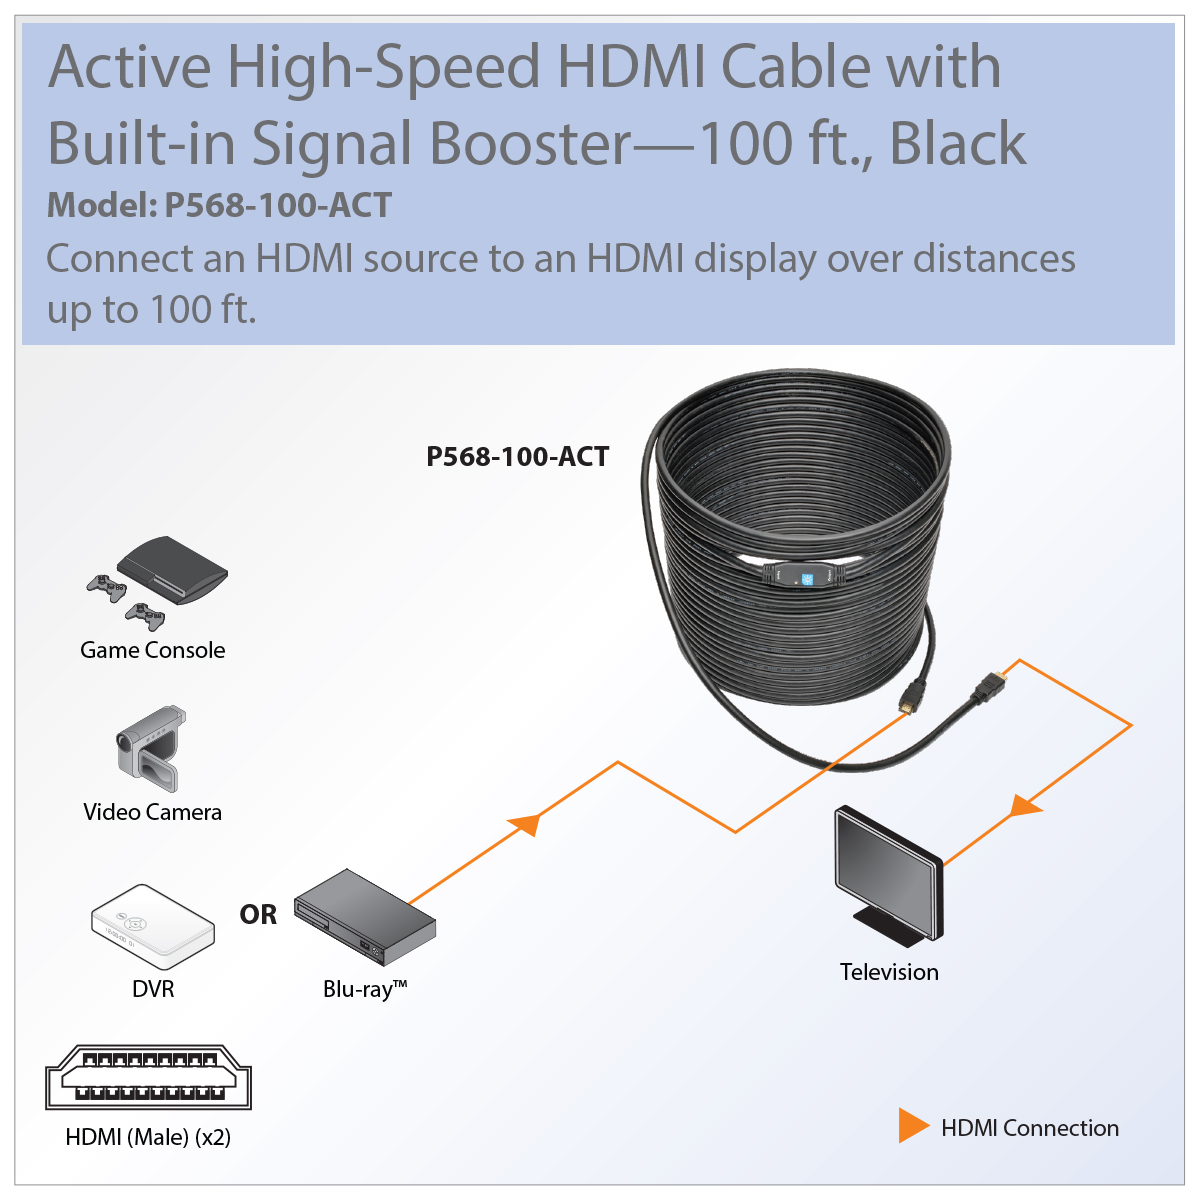 Tripp Lite High Speed Hdmi Cable Active Built In Signal Booster M Connection Diagram Connects An Source To Display Over Distances Up 100 Ft